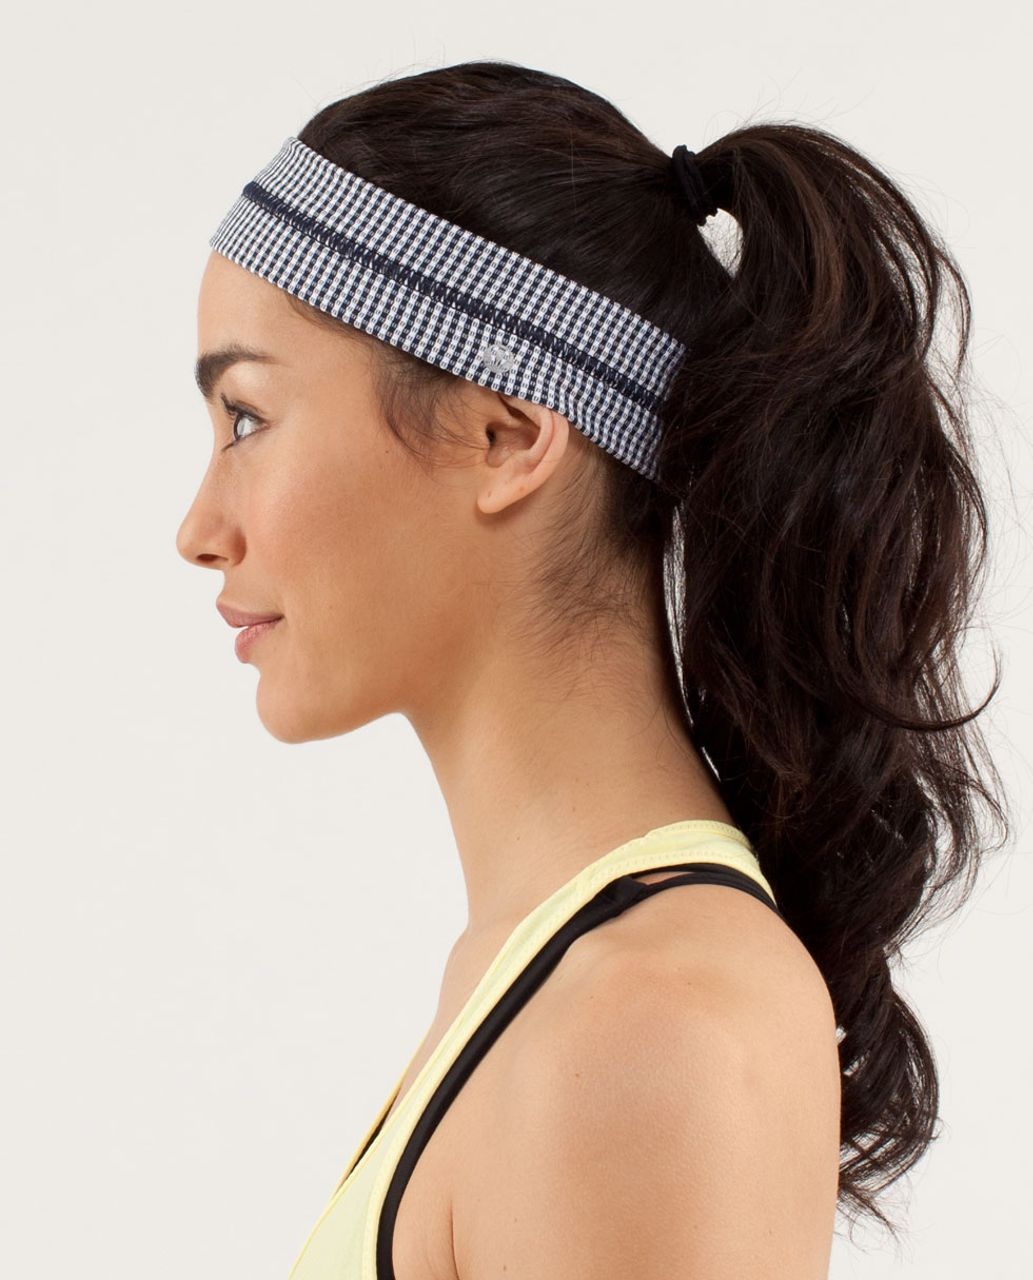 Lululemon Fly Away Tamer Headband - Inkwell (Gingham)